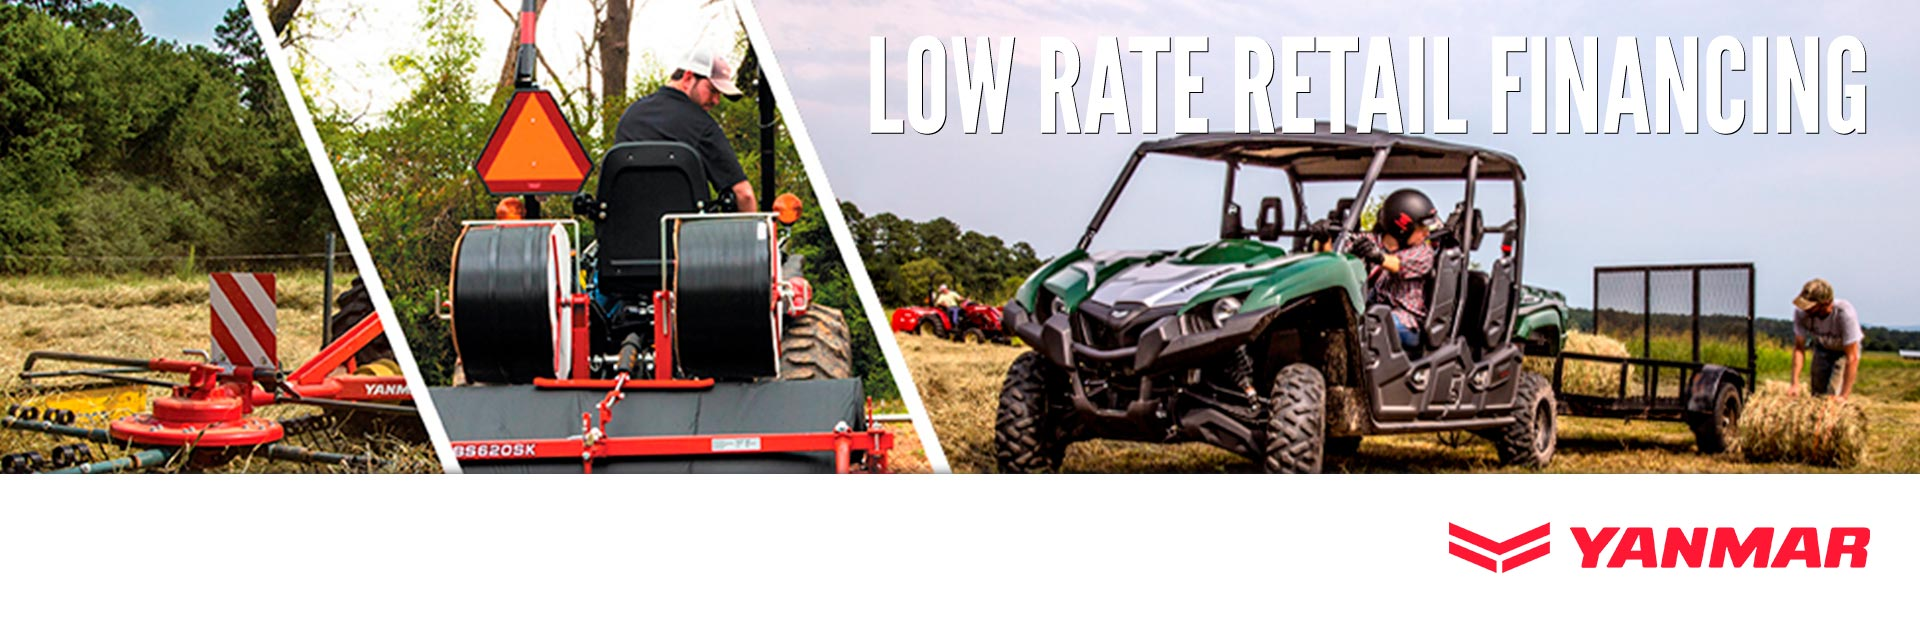 Yanmar USA: Low Rate Retail Financing